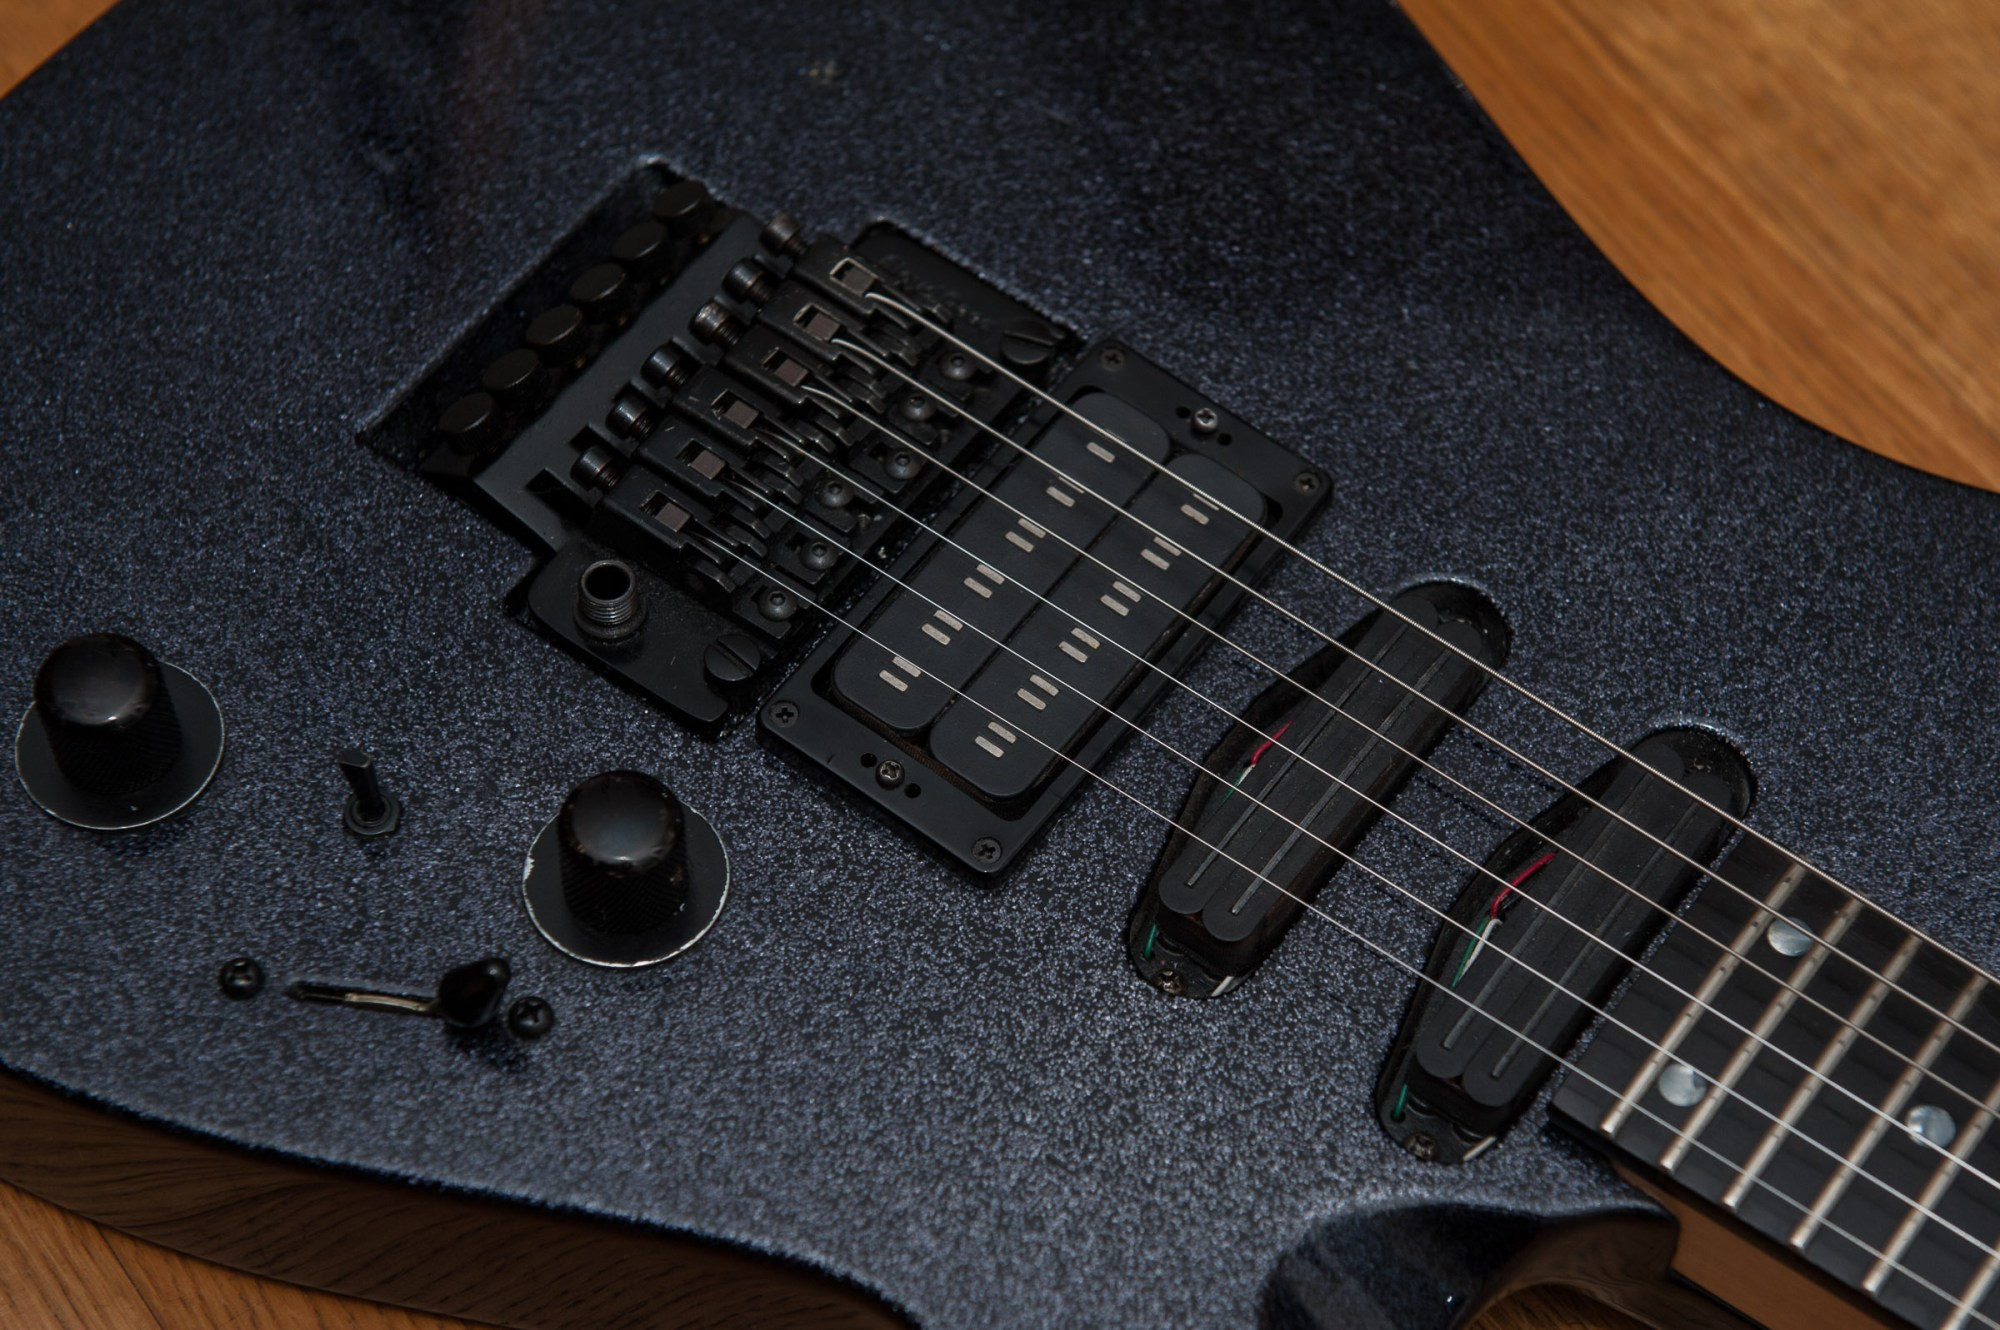 hight resolution of proaxe deluxe closeup showing floyd rose pro and seymour duncan pickups